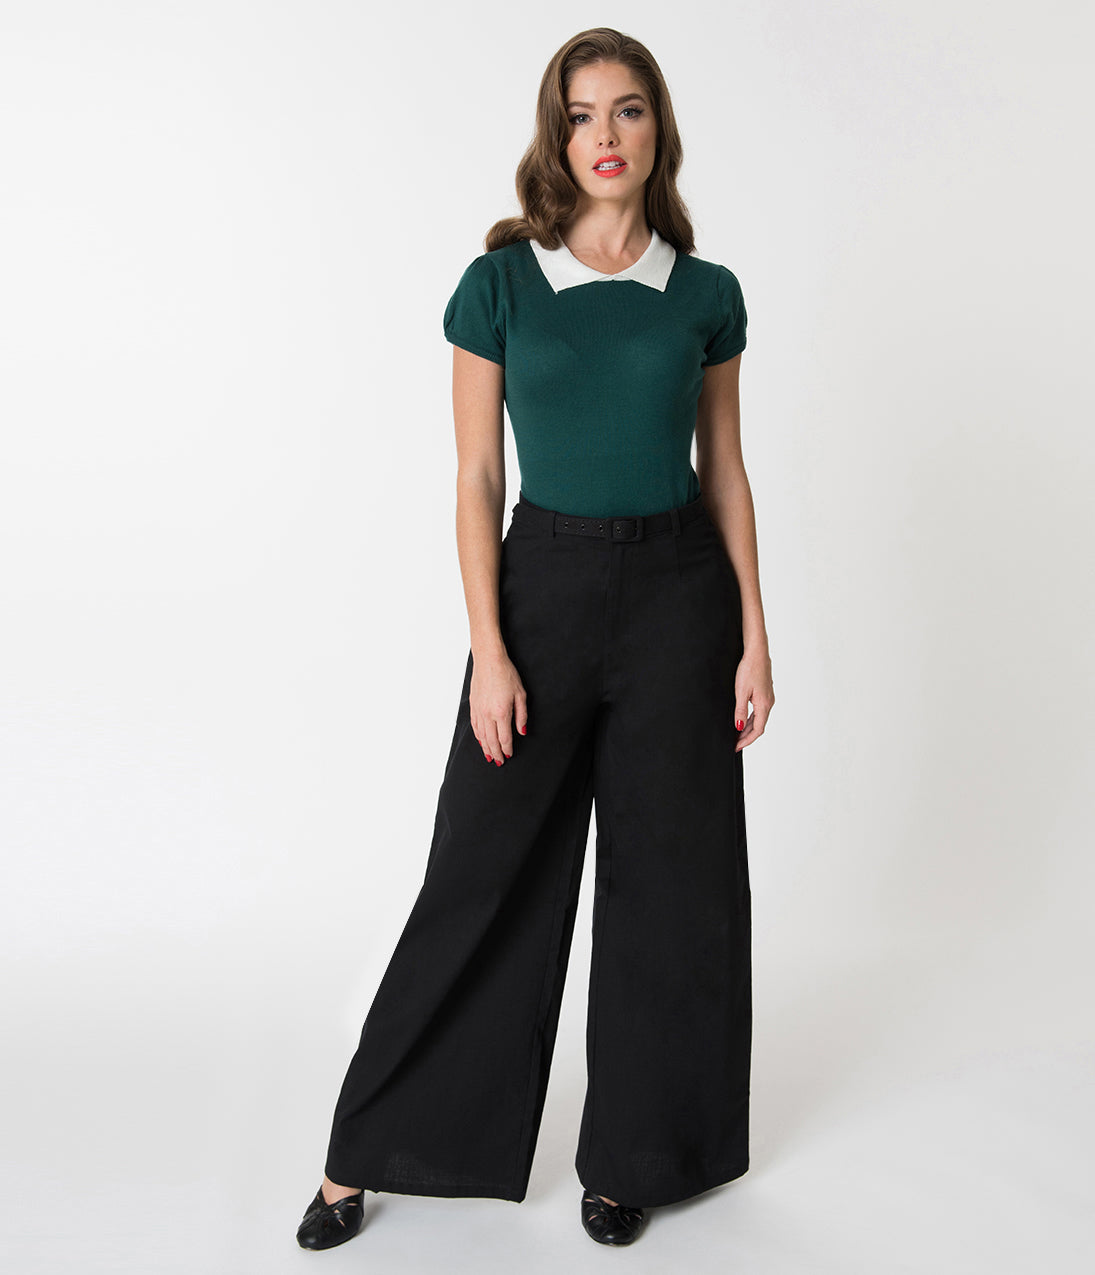 1940s Swing Pants & Sailor Trousers- Wide Leg, High Waist Collectif Black Wide Leg Vicky Cotton Trousers $51.00 AT vintagedancer.com